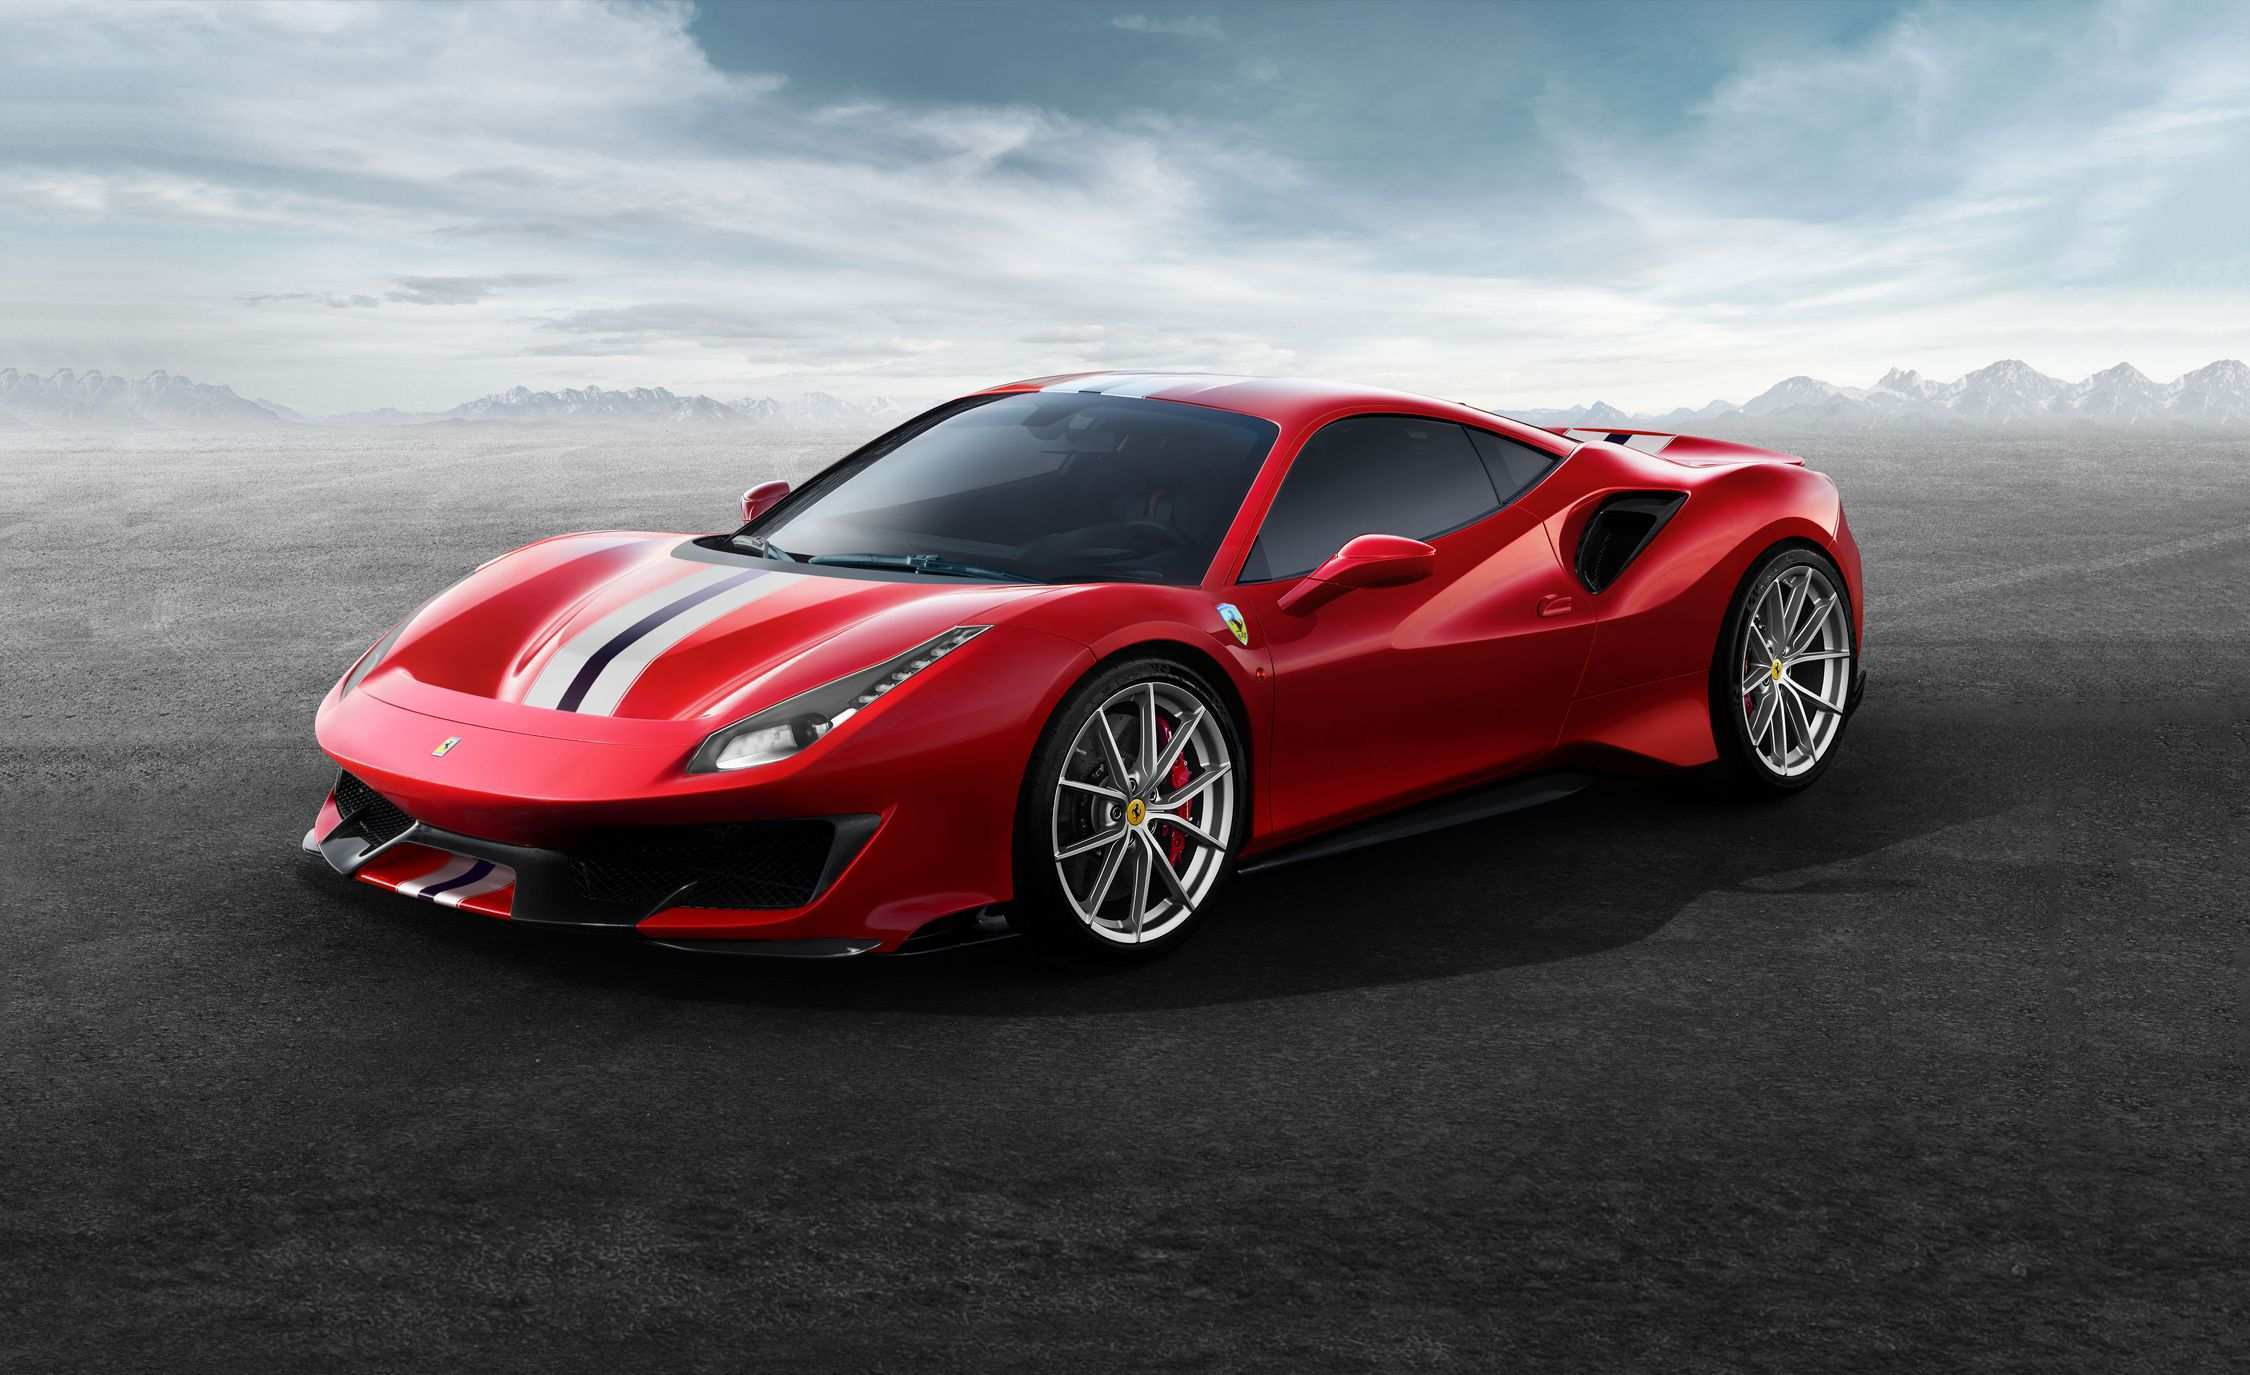 49 All New 2019 Ferrari 588 Price and Review for 2019 Ferrari 588